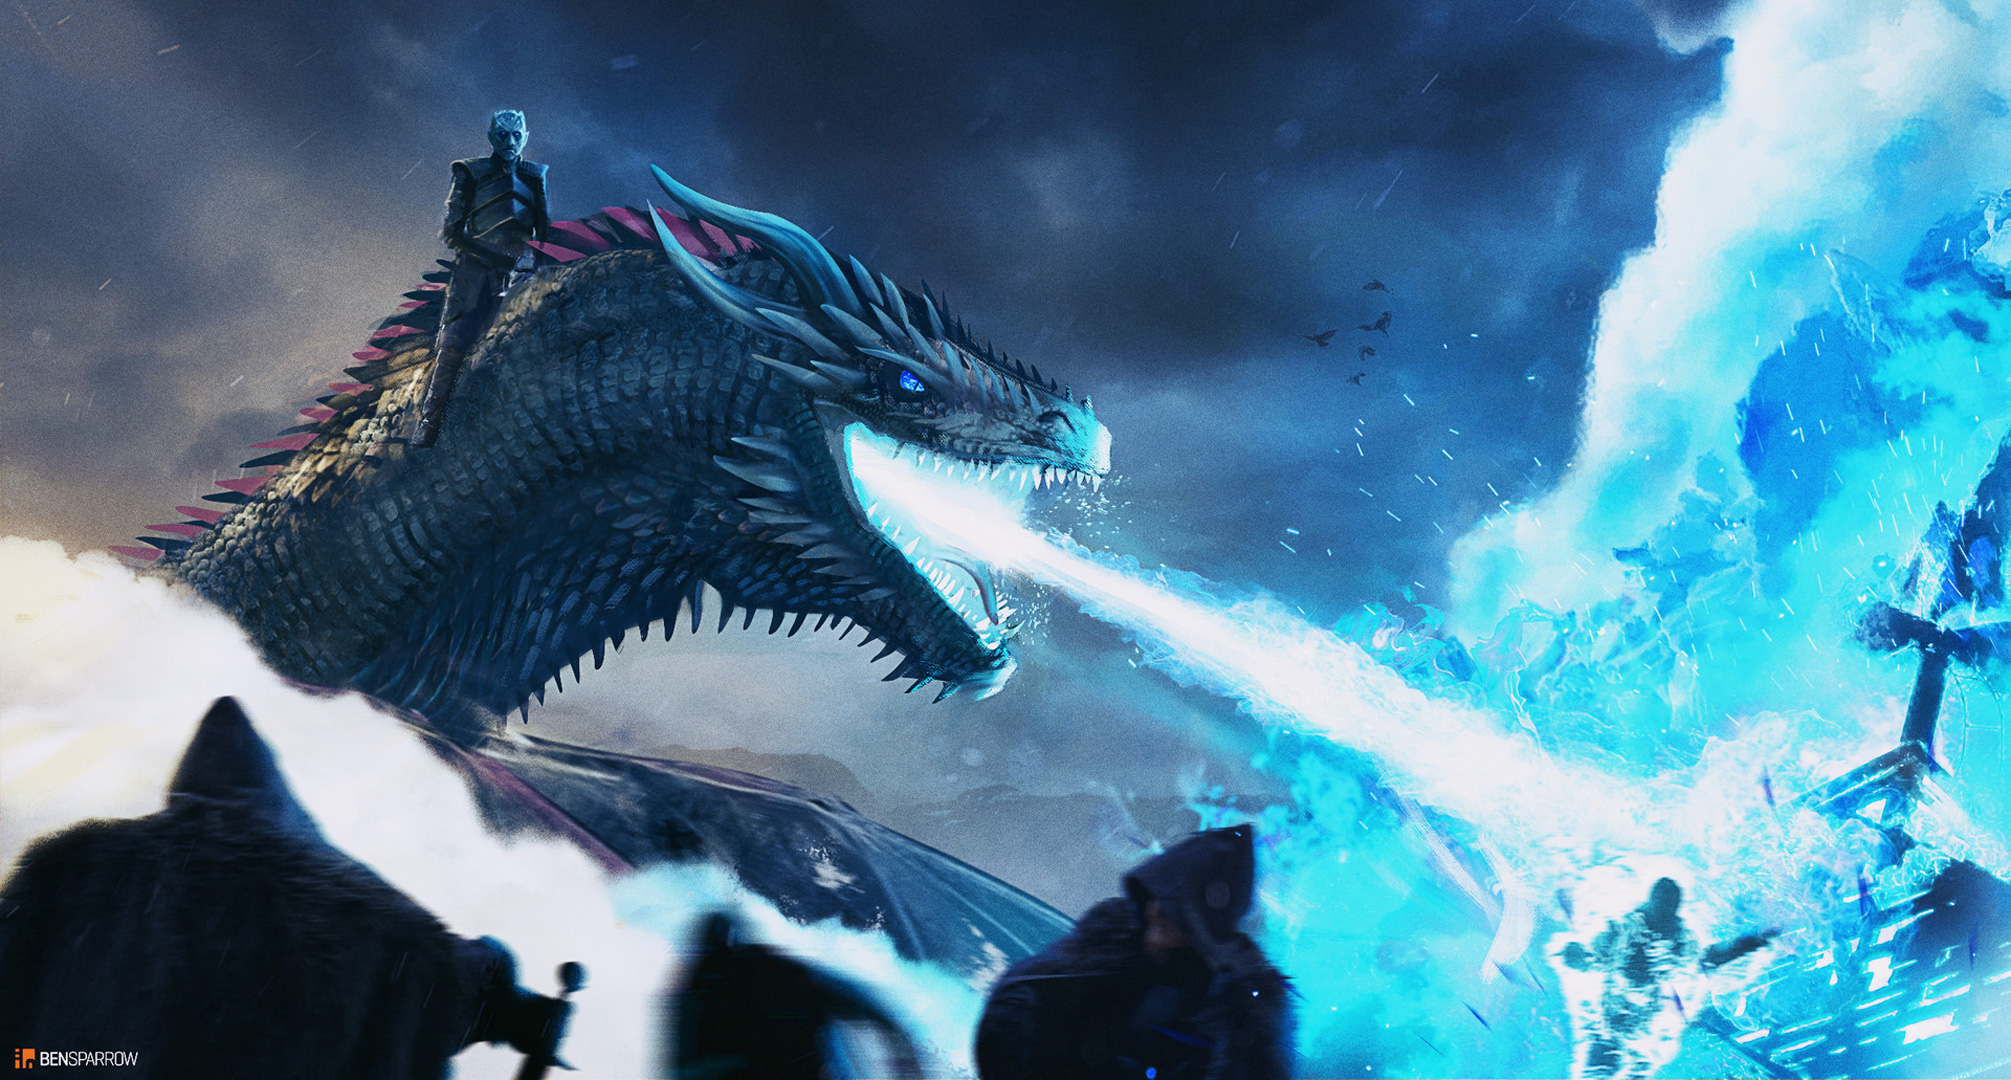 White Walker And Dragon Breaching The Wall Hd Tv Shows 4k